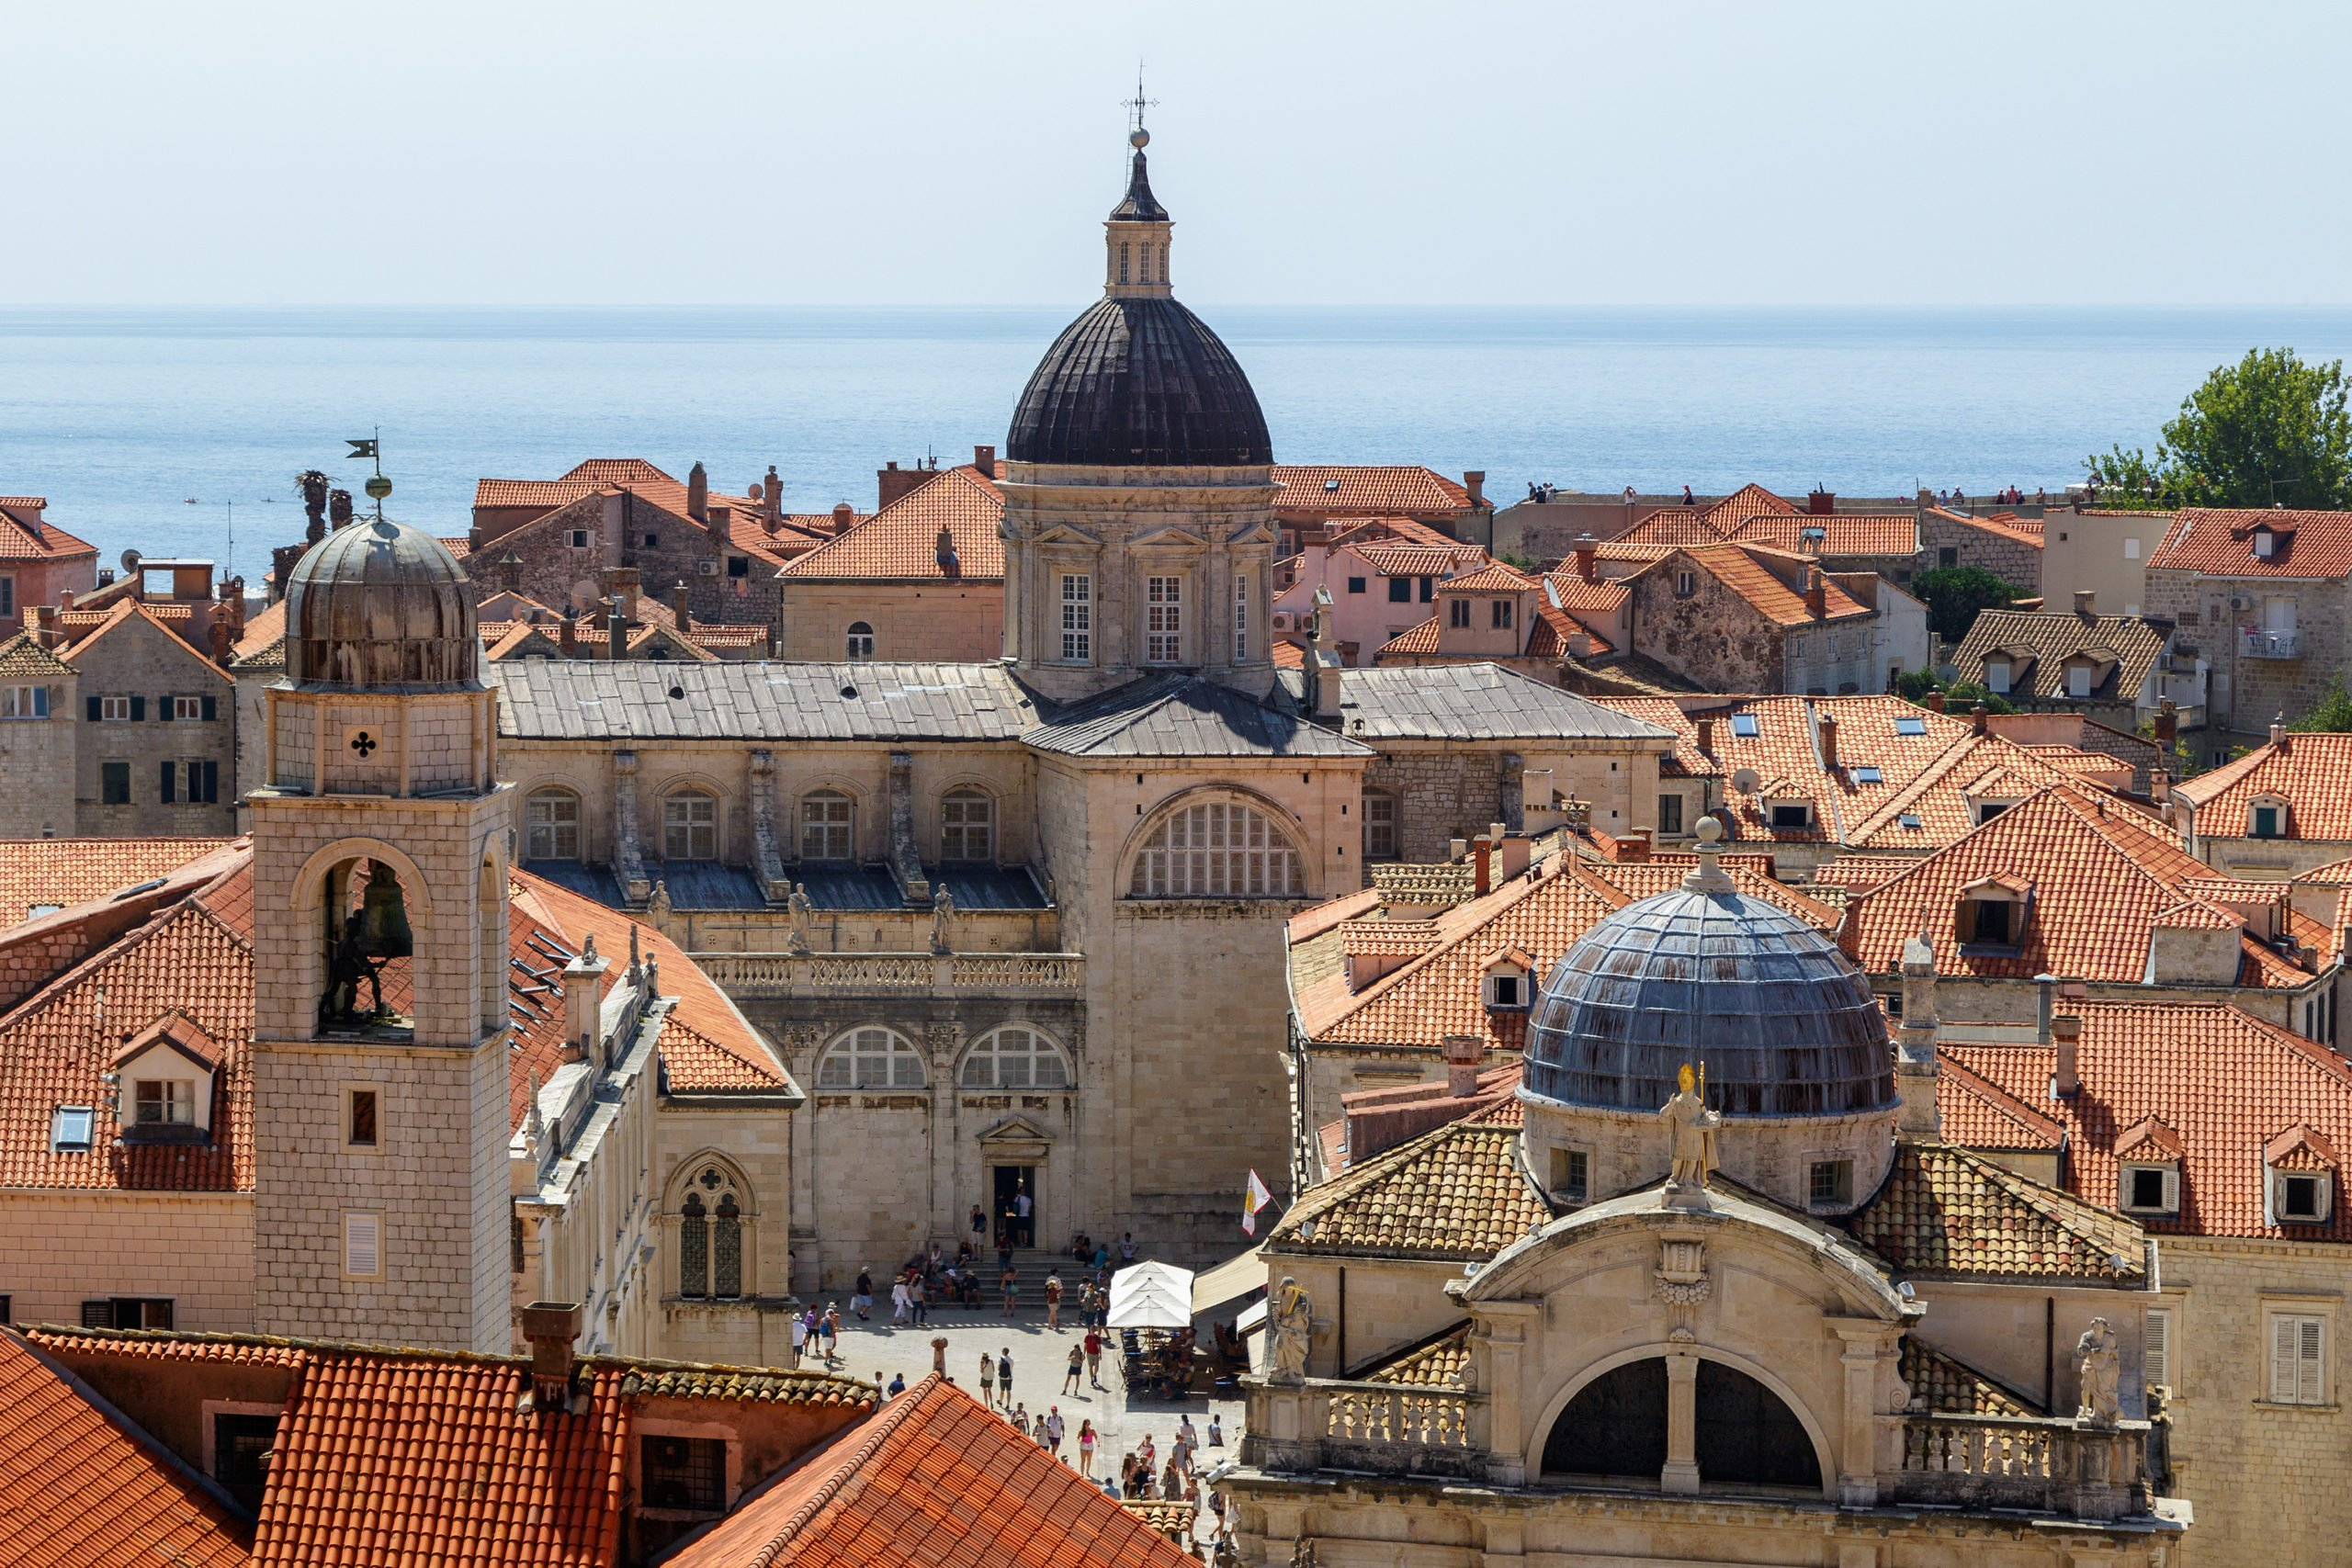 Discover The City Of Dubrovnik With Your Local Guide During The Dubrovnik Highlights & Cavtat Shore Excursion